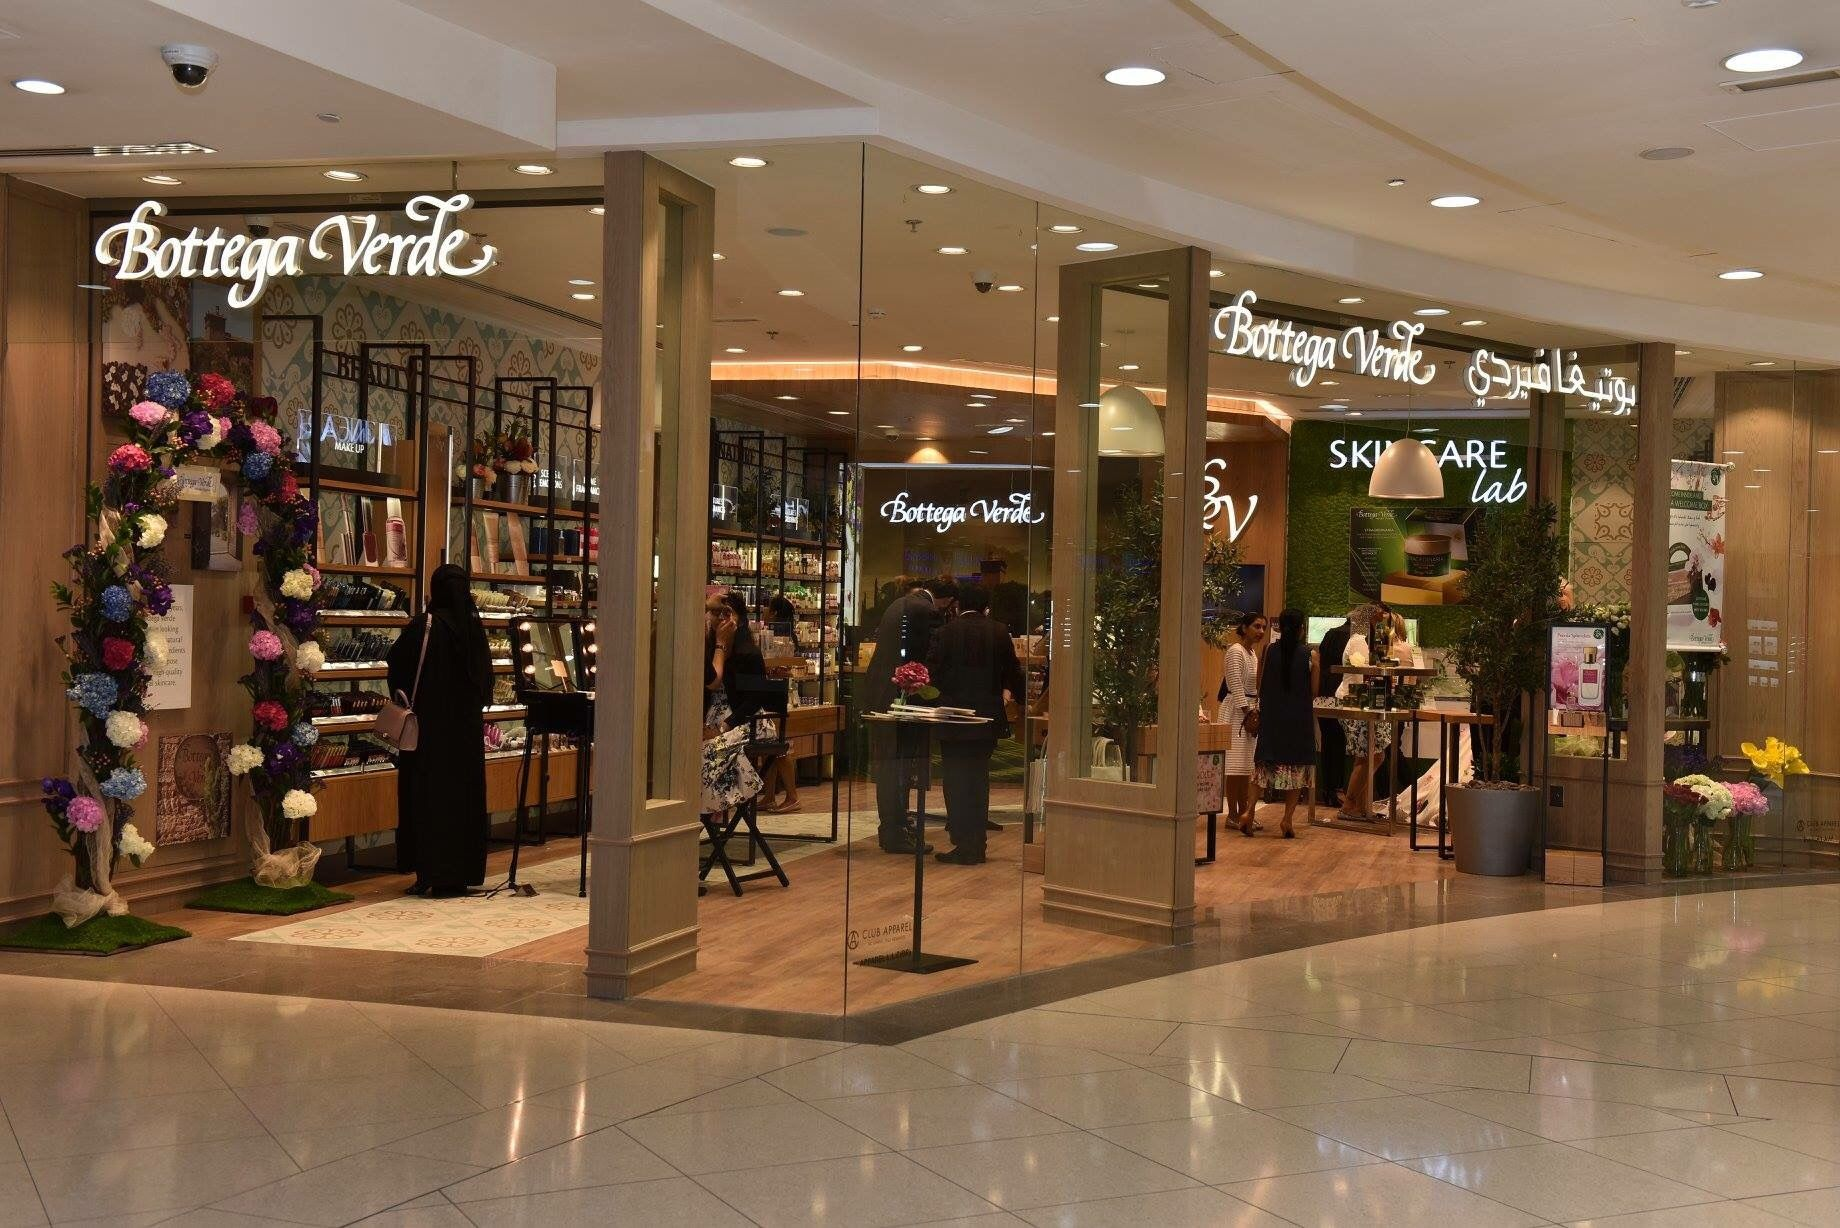 Bottega Verde opened flagship boutique in Dubai.